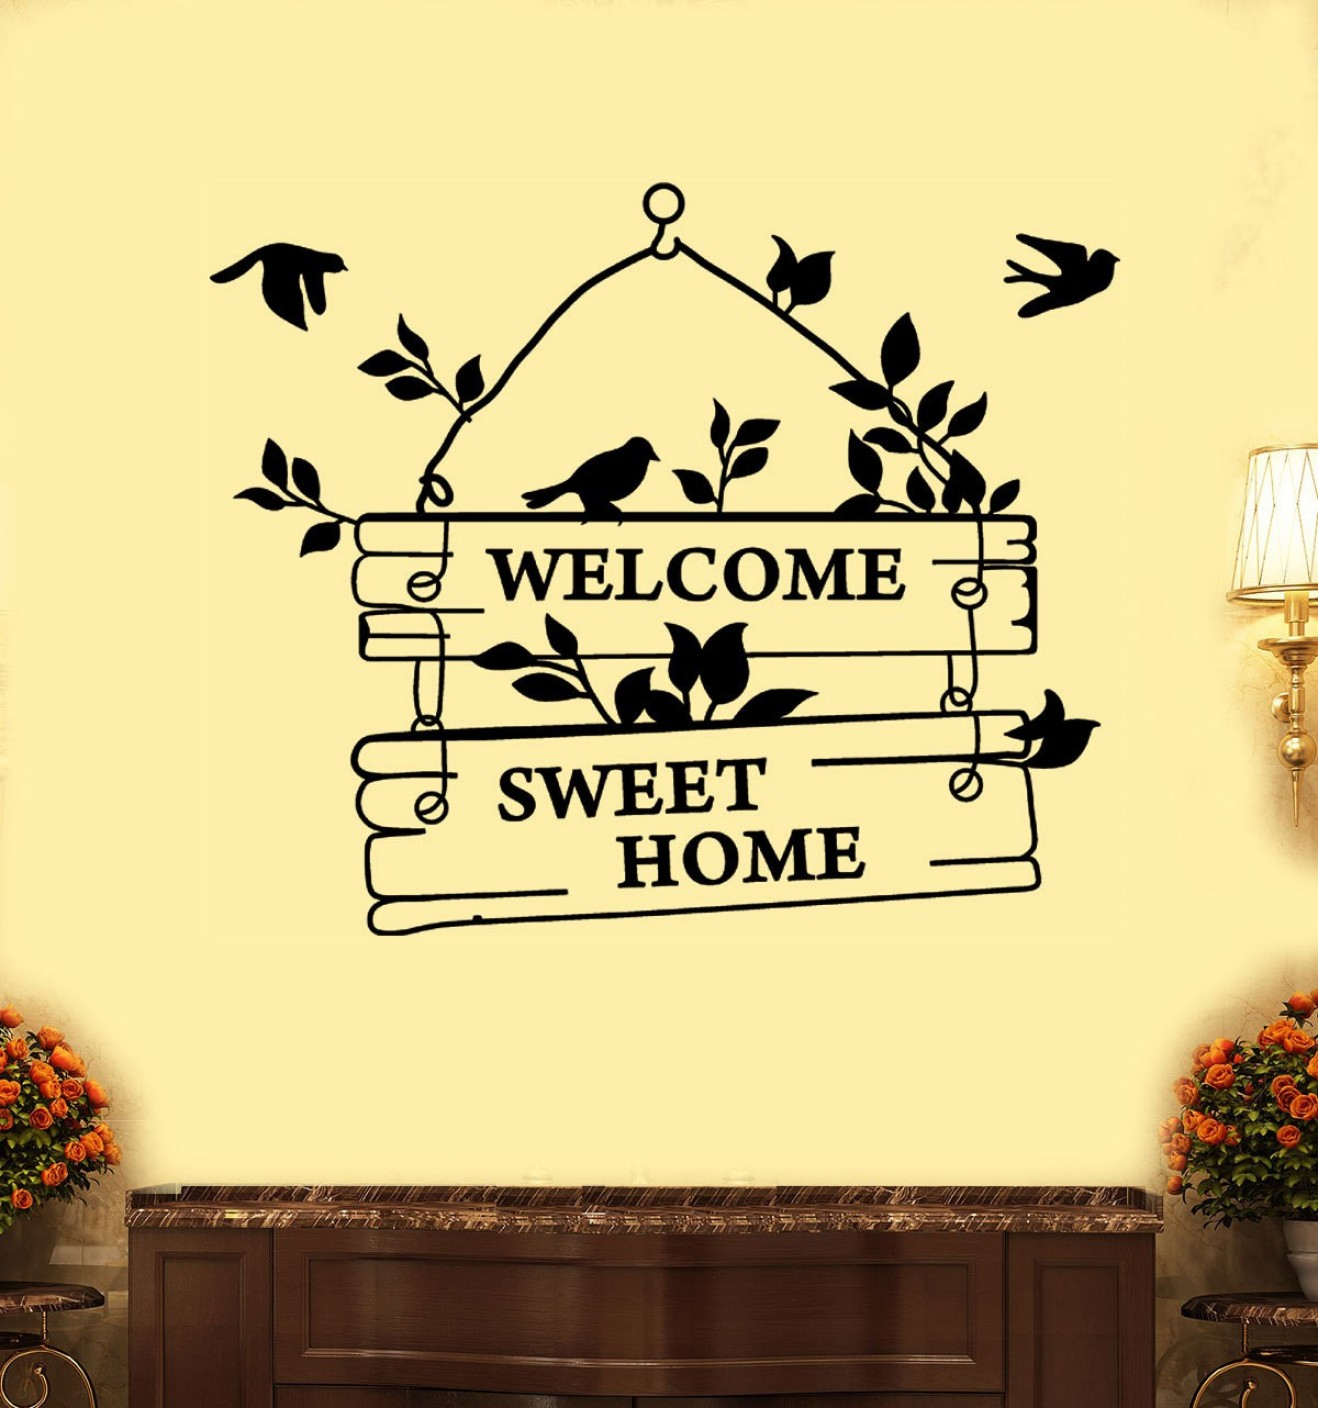 New Way Decals Wall Sticker Fantasy Wallpaper Price in India - Buy ...